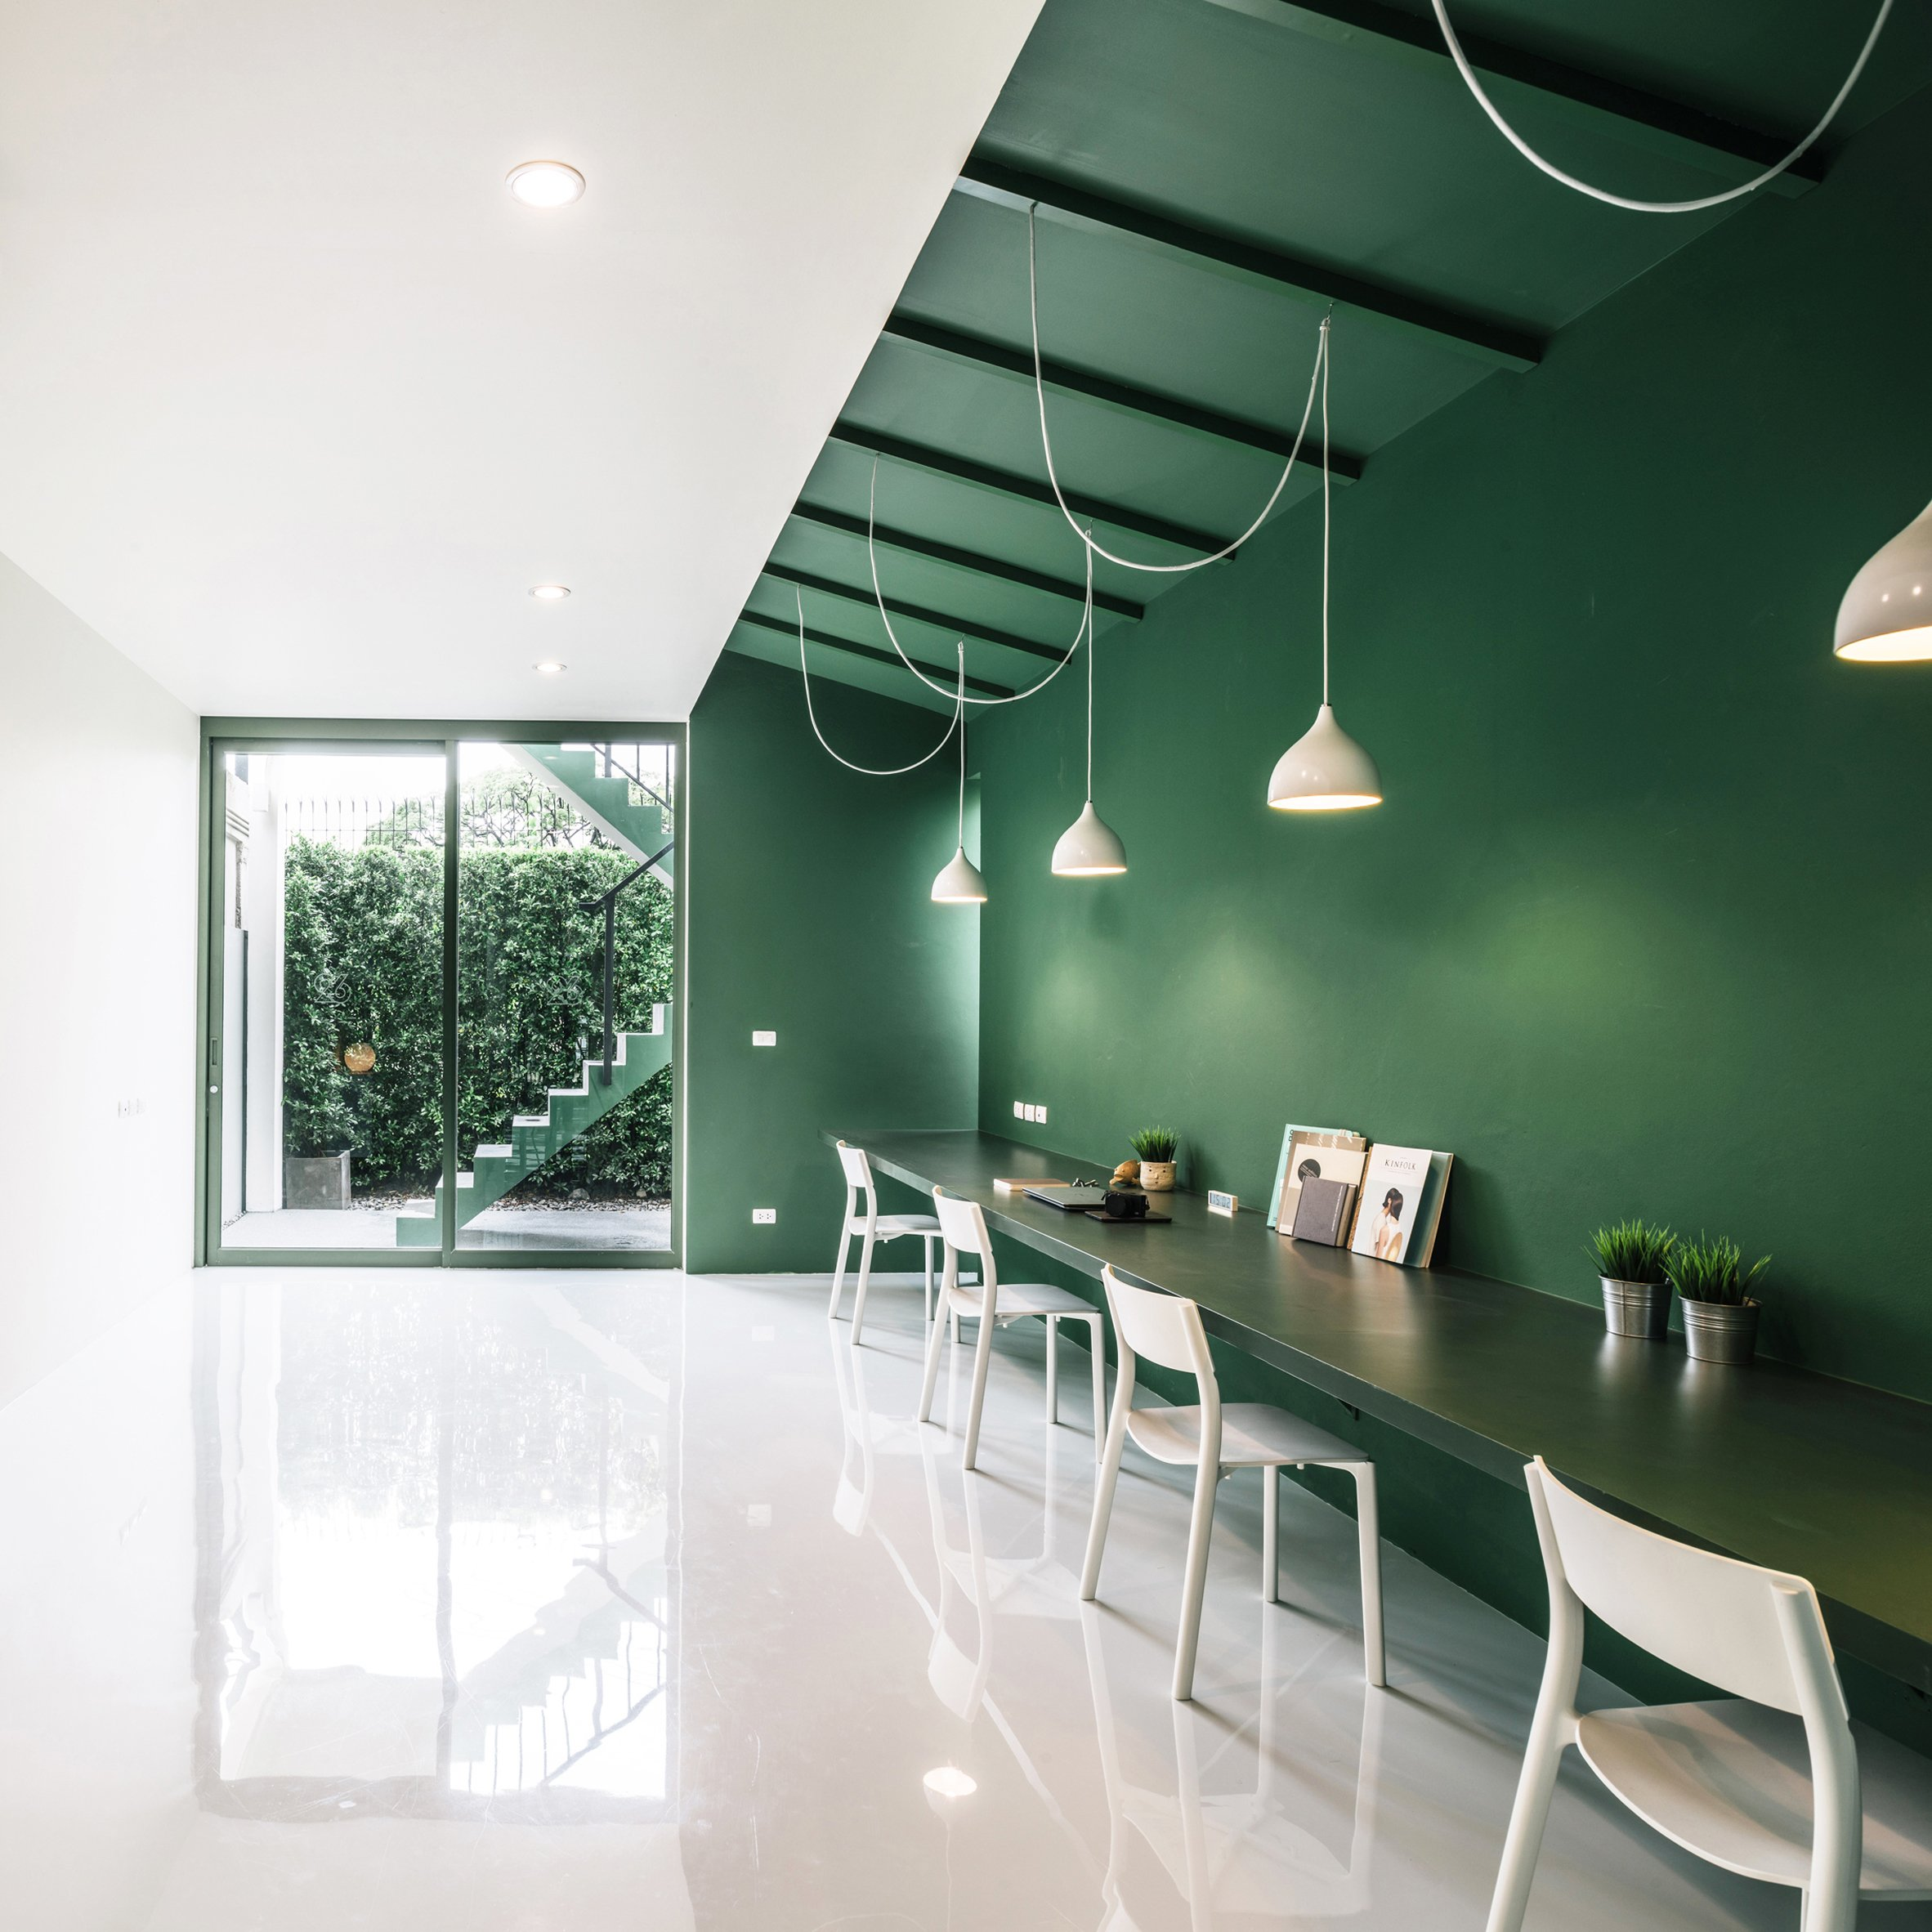 Superb 12 Of The Best Minimalist Office Interiors Where Thereu0027s Space To Think